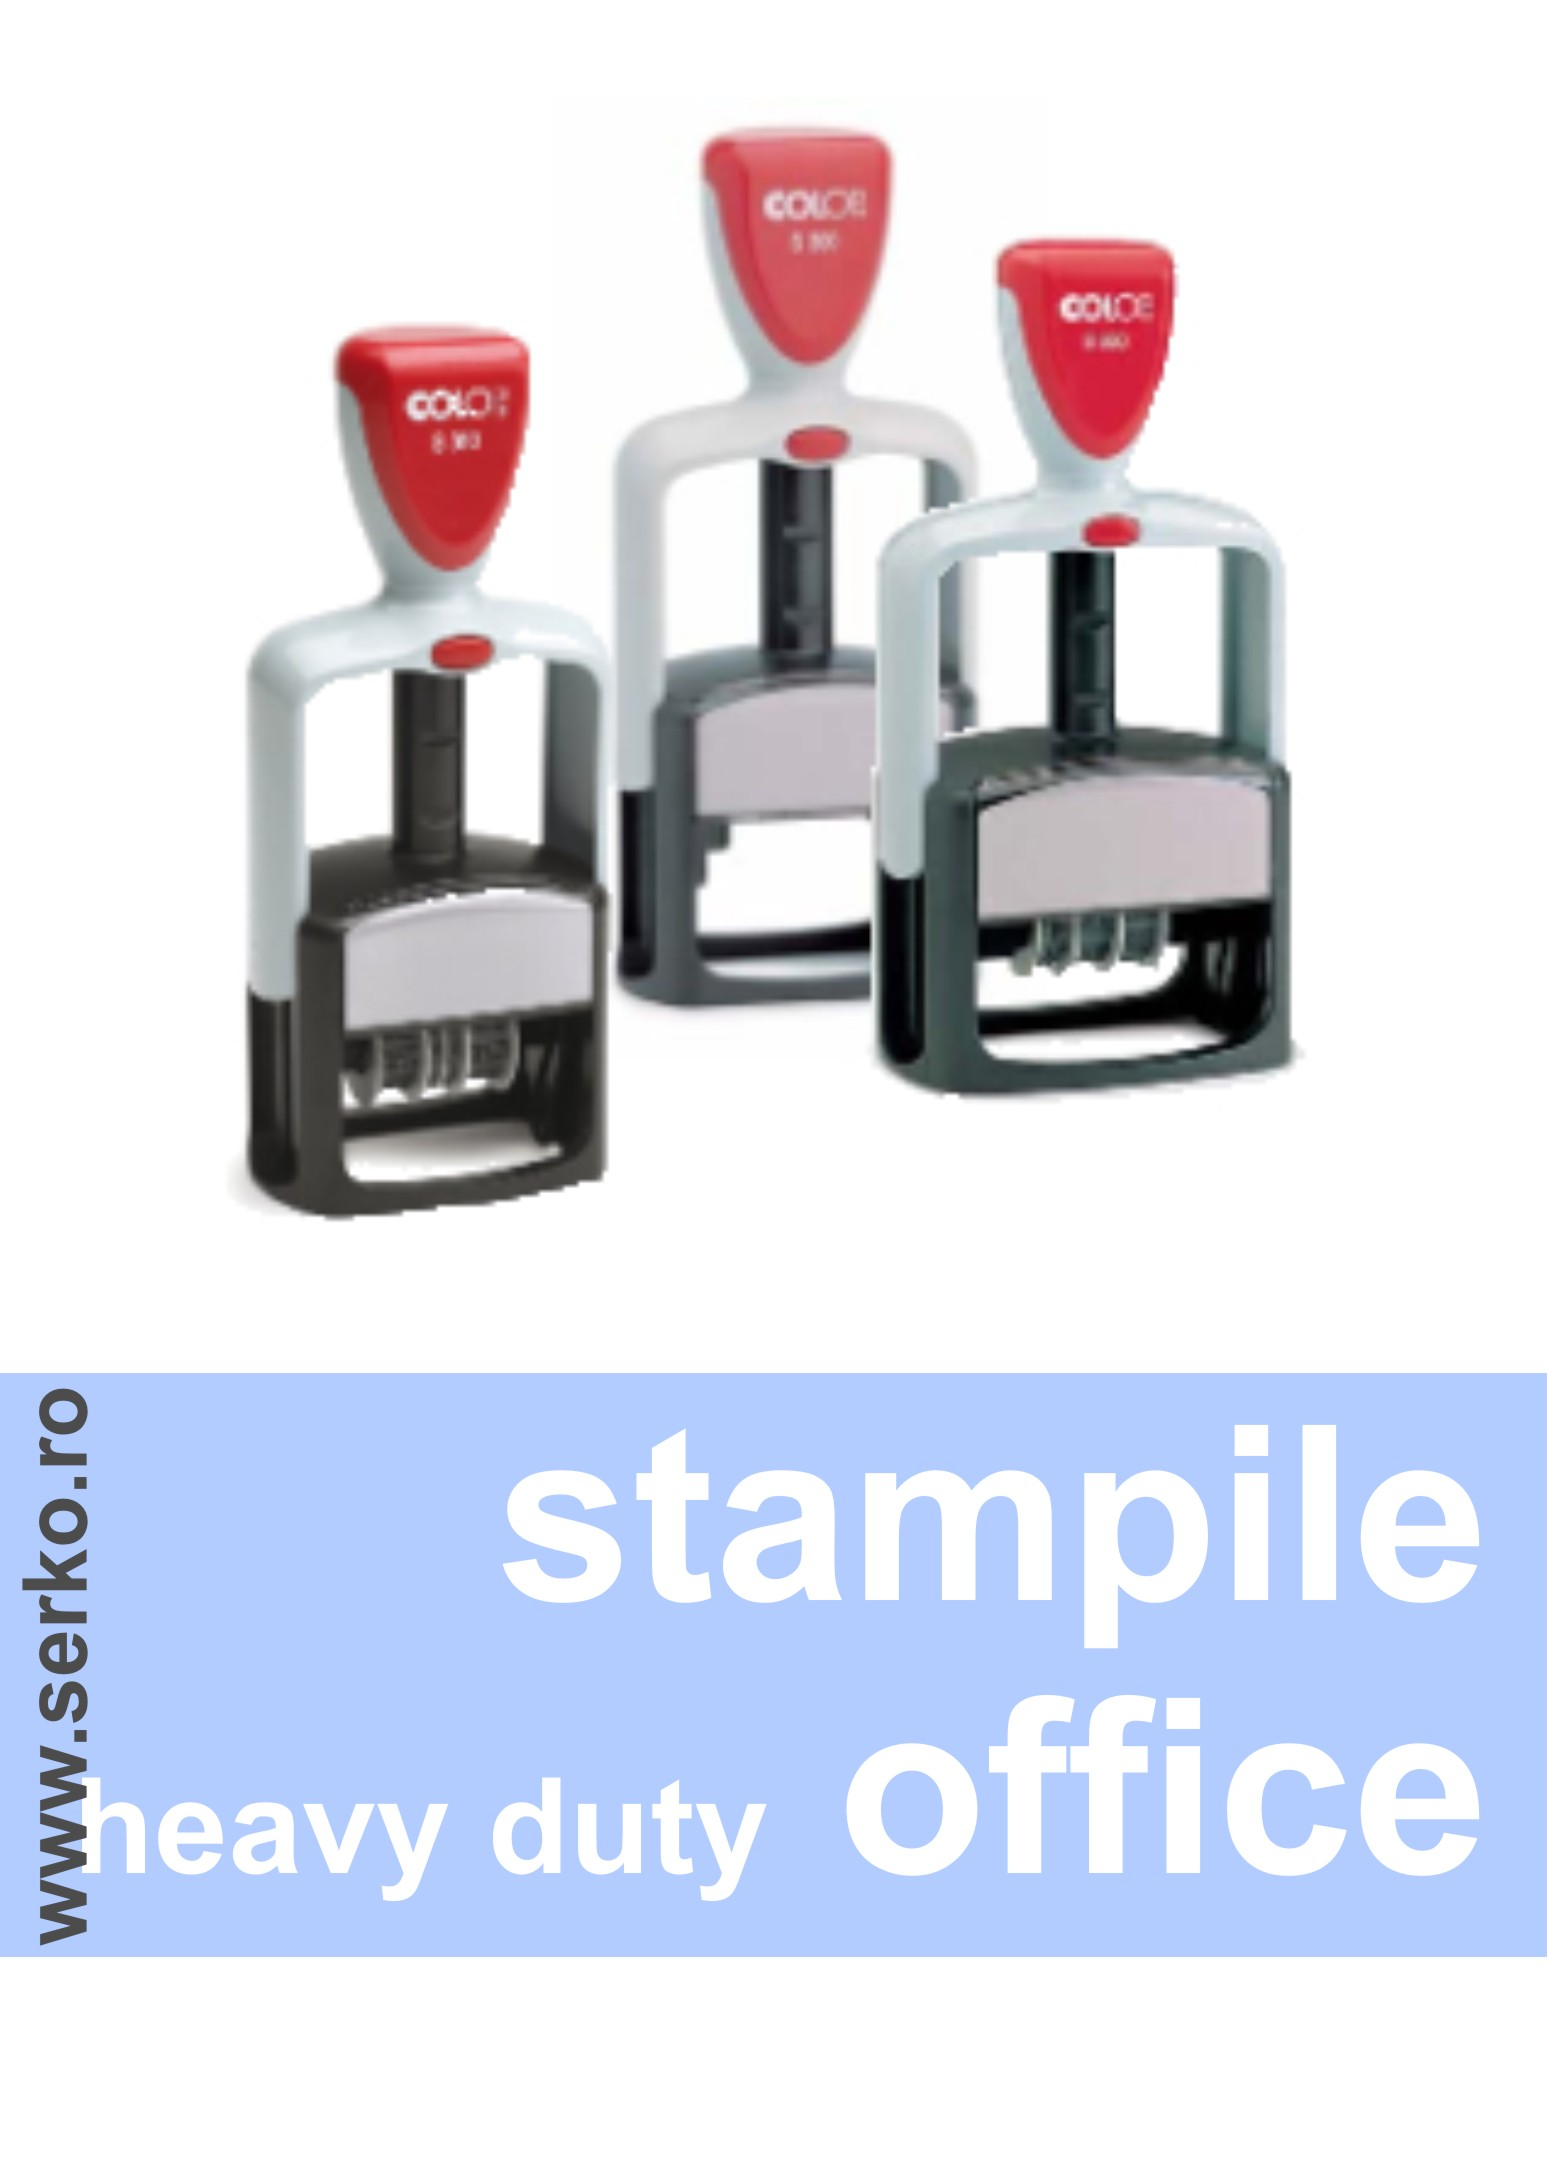 http://www.estampila.ro/catalog/stampile-heavy-duty-11